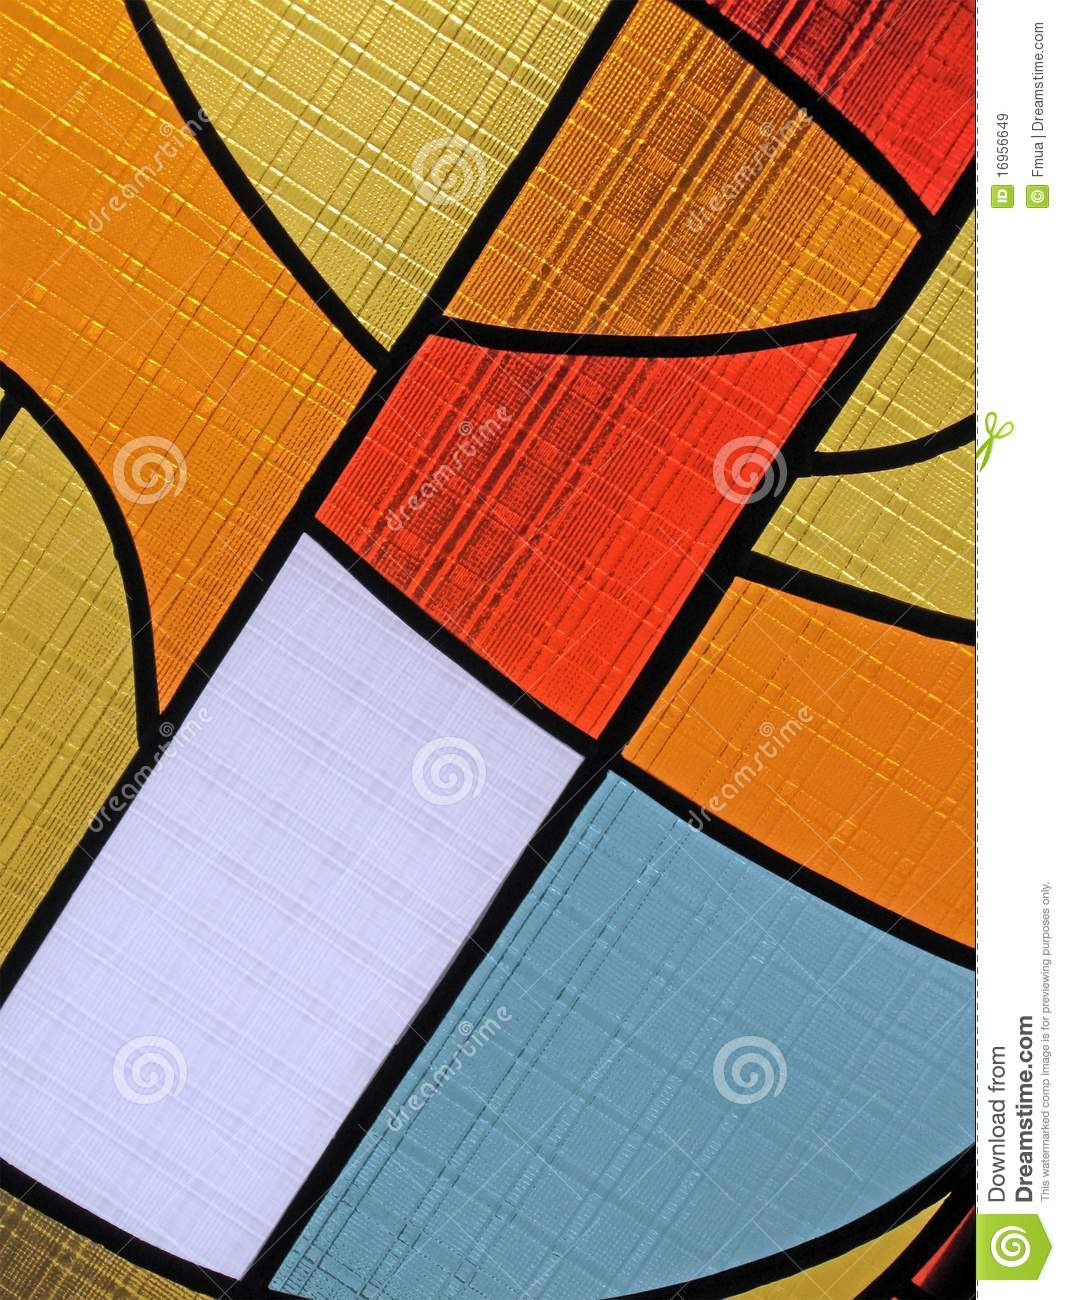 Colorful glass diversity,stained-glass background,